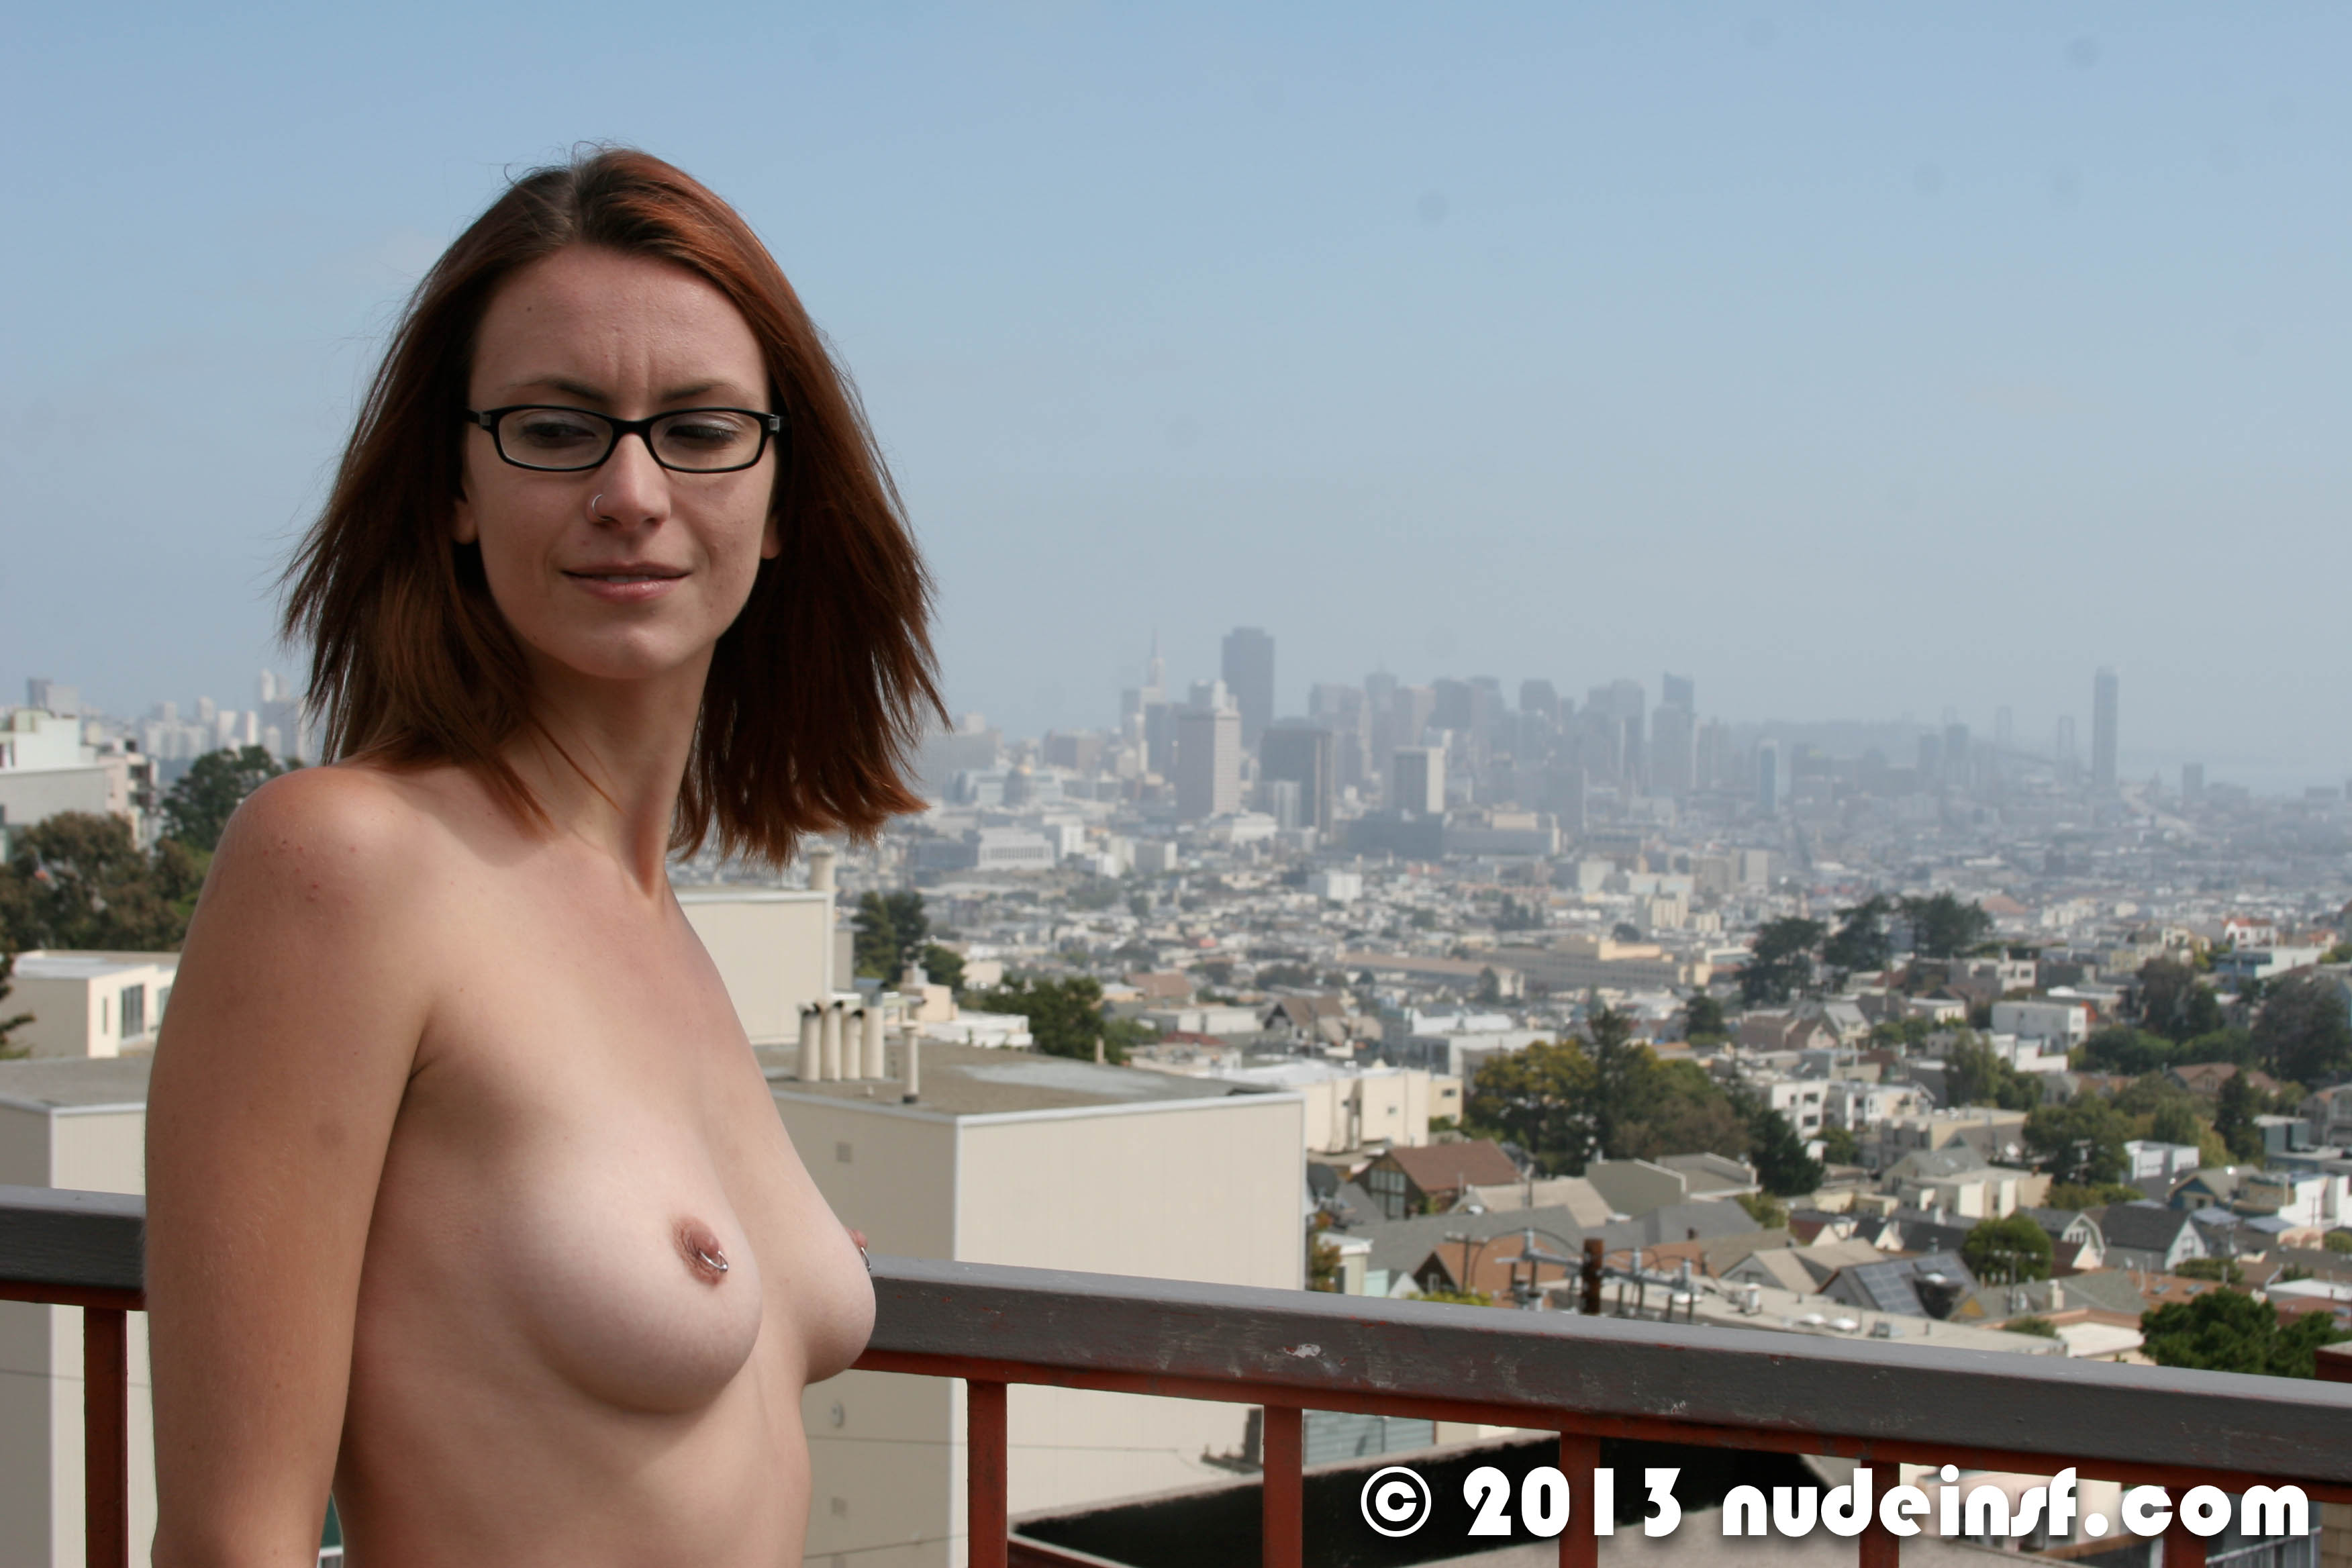 Hi res pics of beautiful nudist